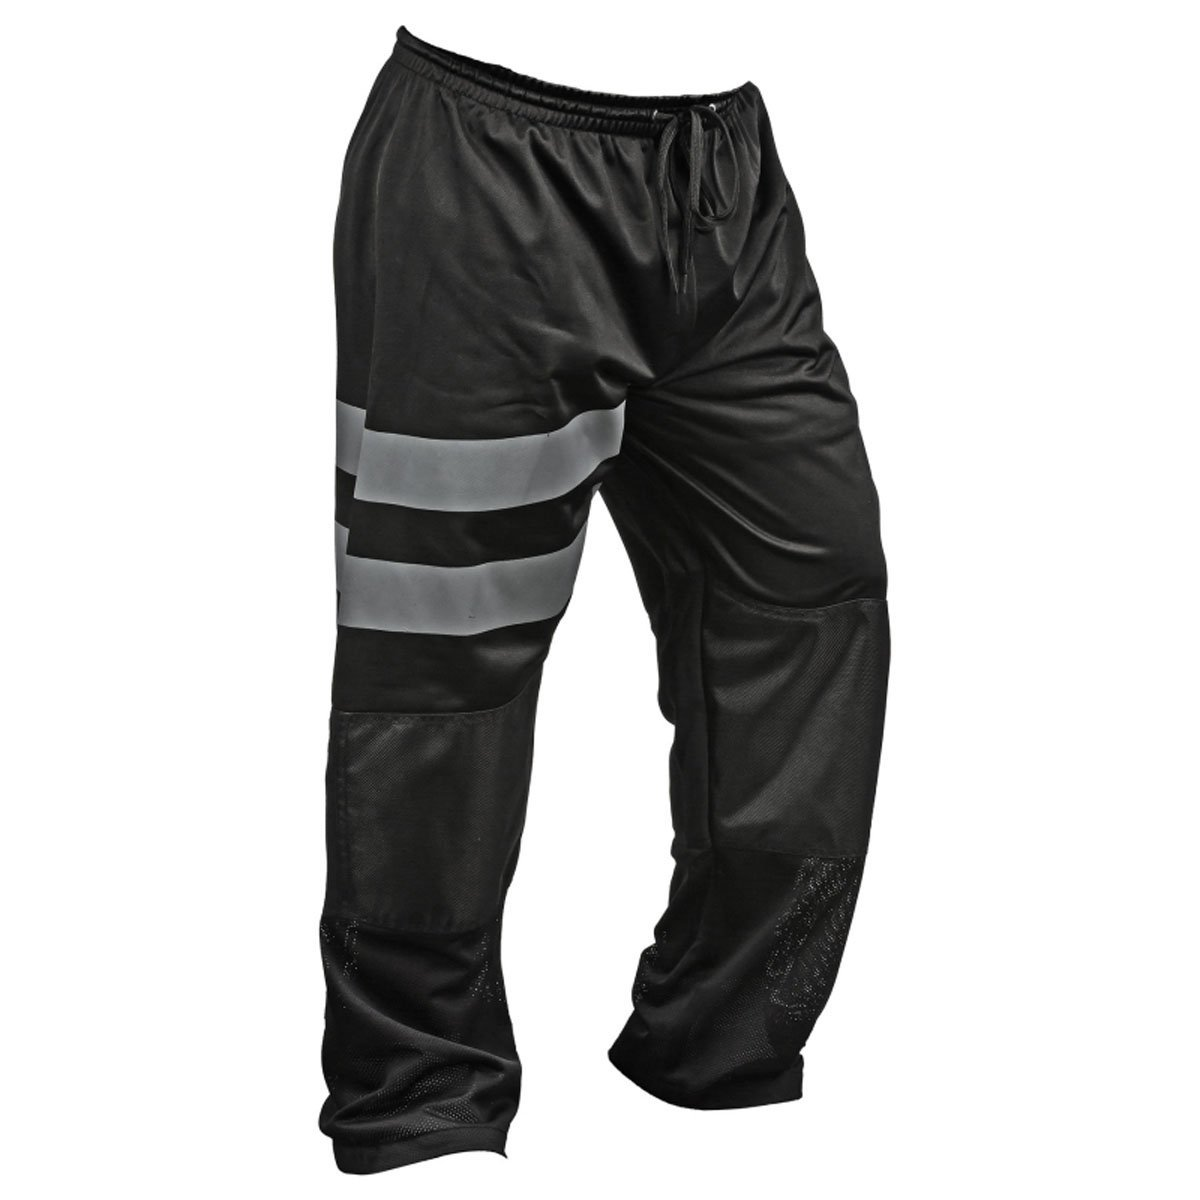 Hockey HPY27BK-S Youth Spartan XT Hockey Pants, Small, Synthetic By Tour Ship from US by